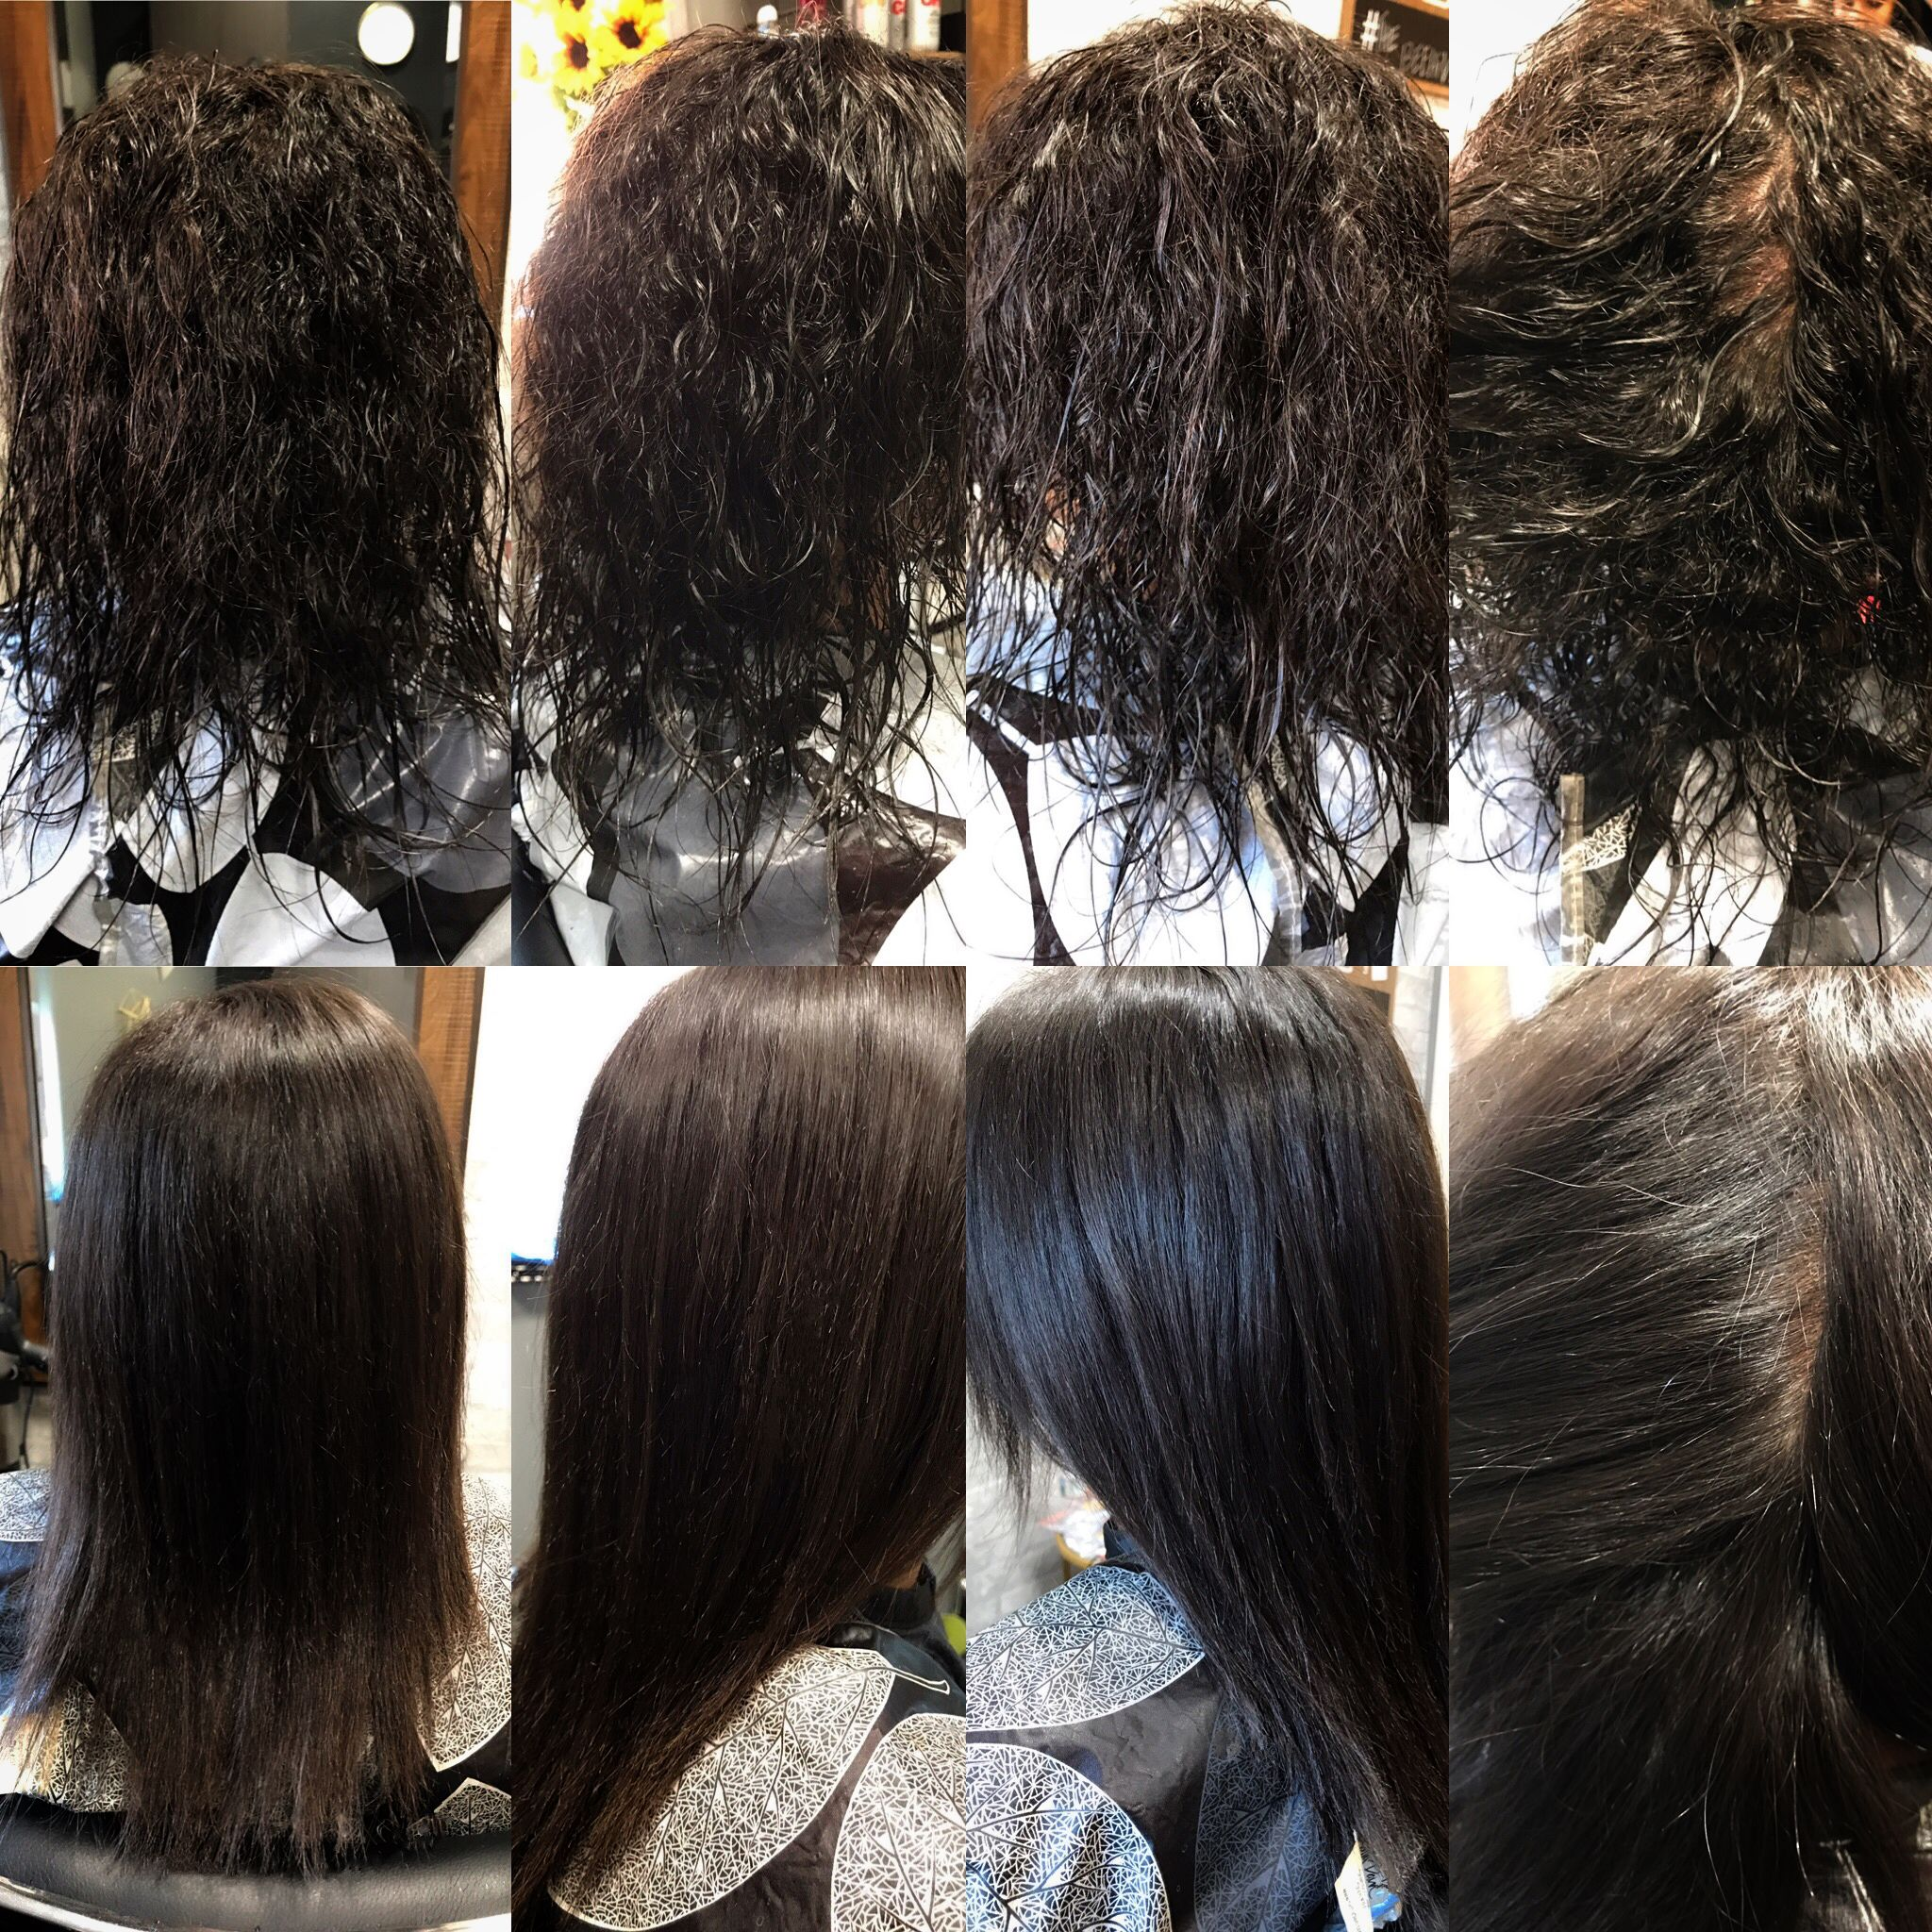 Come to Equanimous for your Keratin Straightening